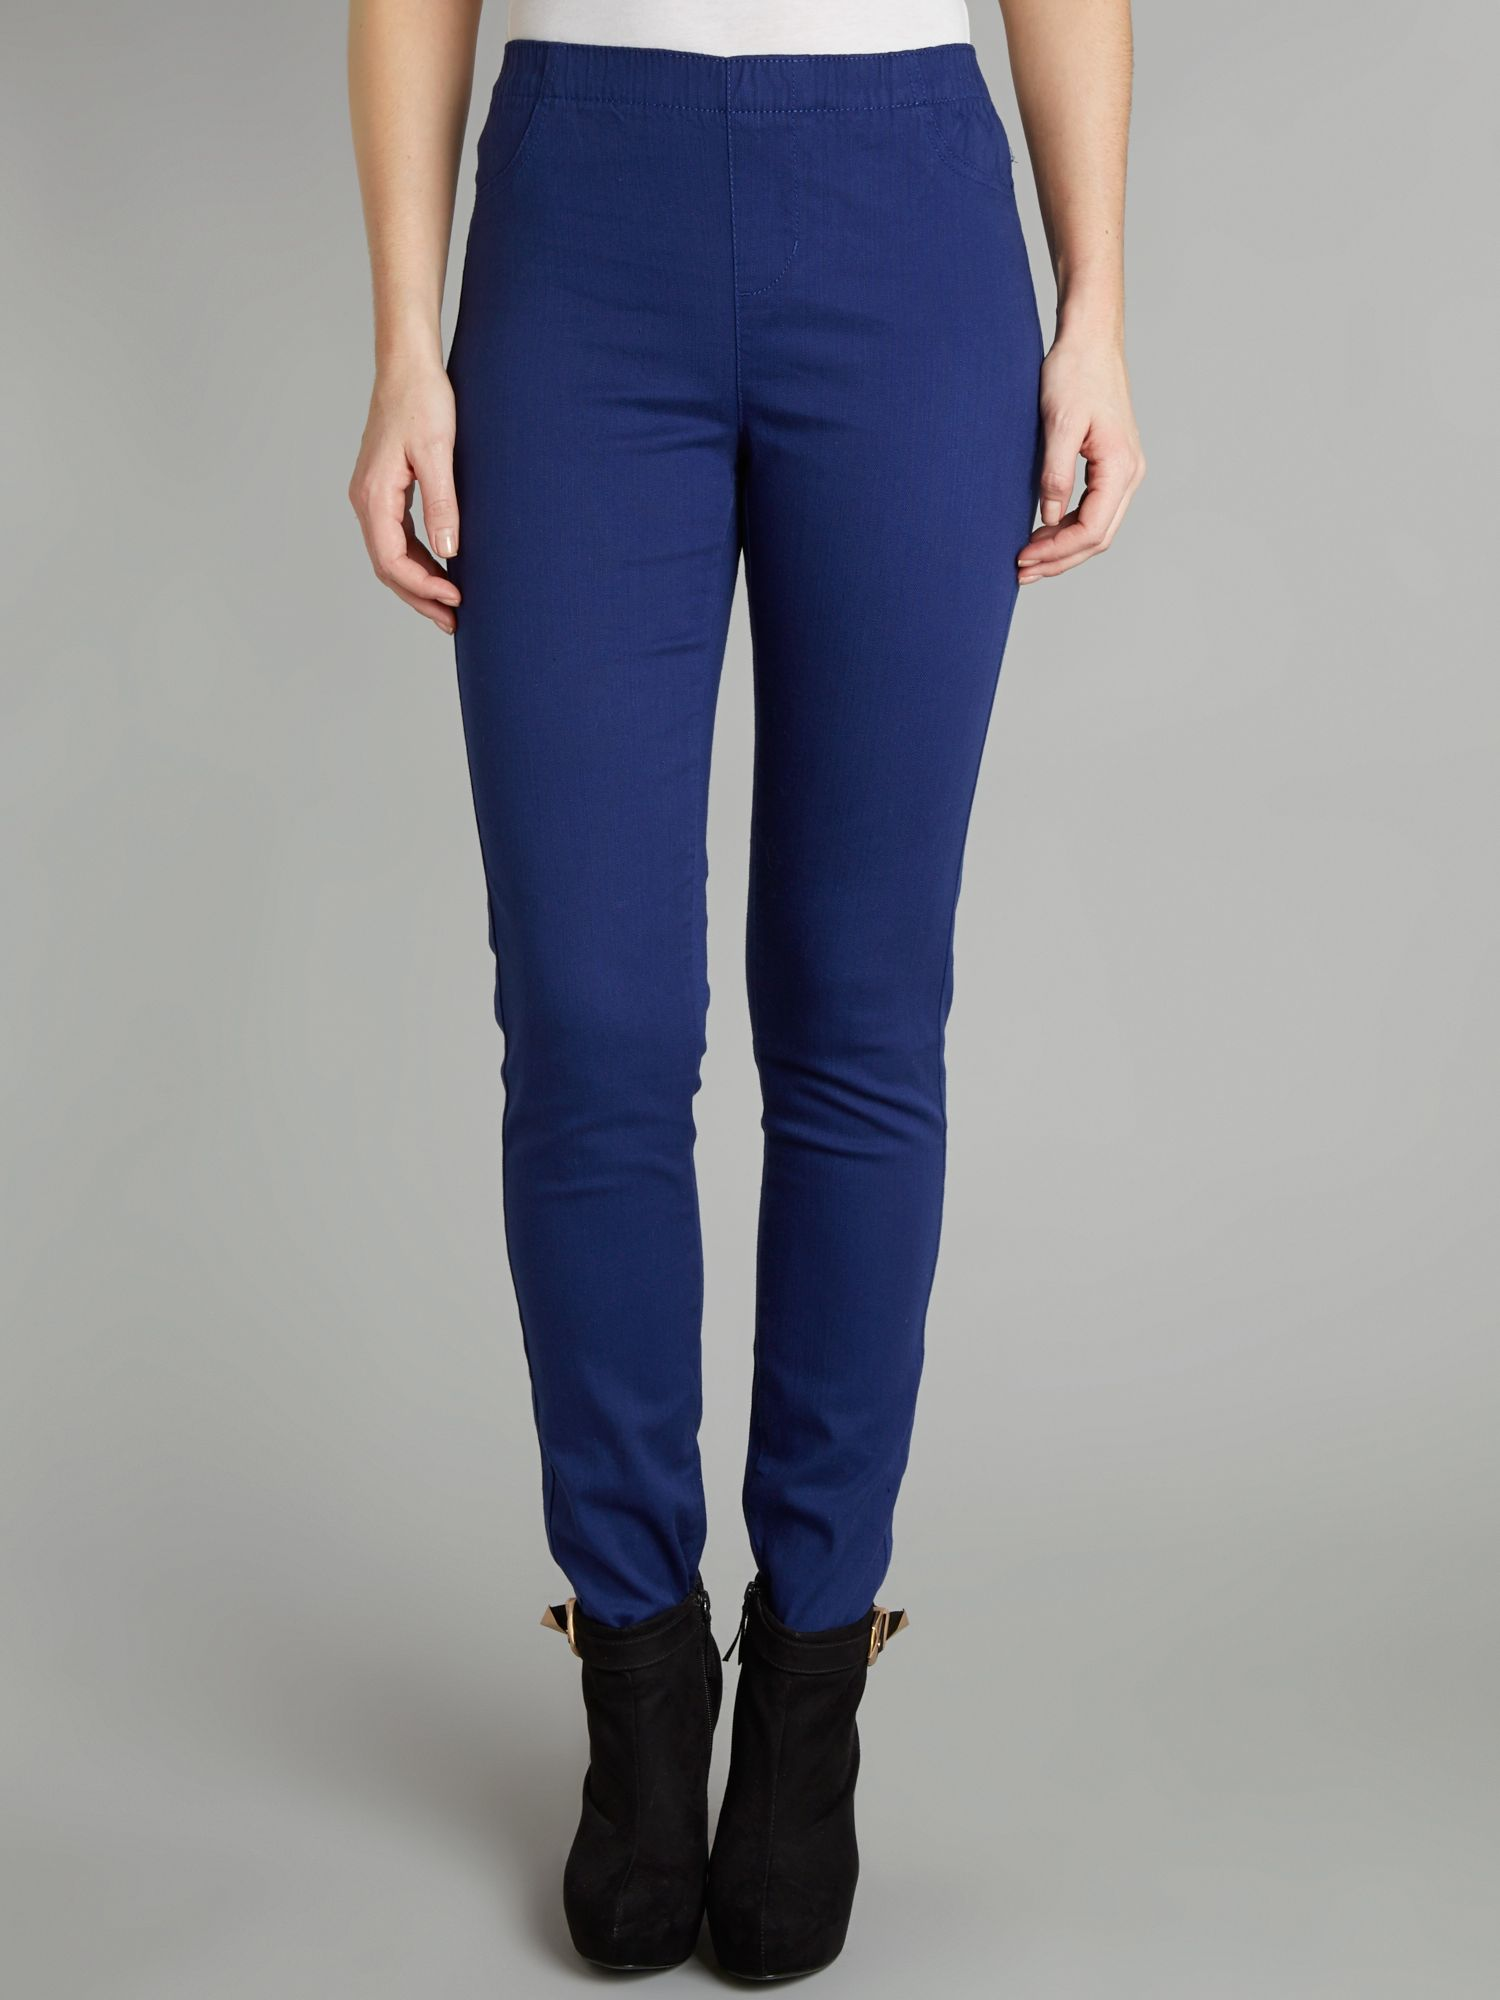 Coloured plain jeggings